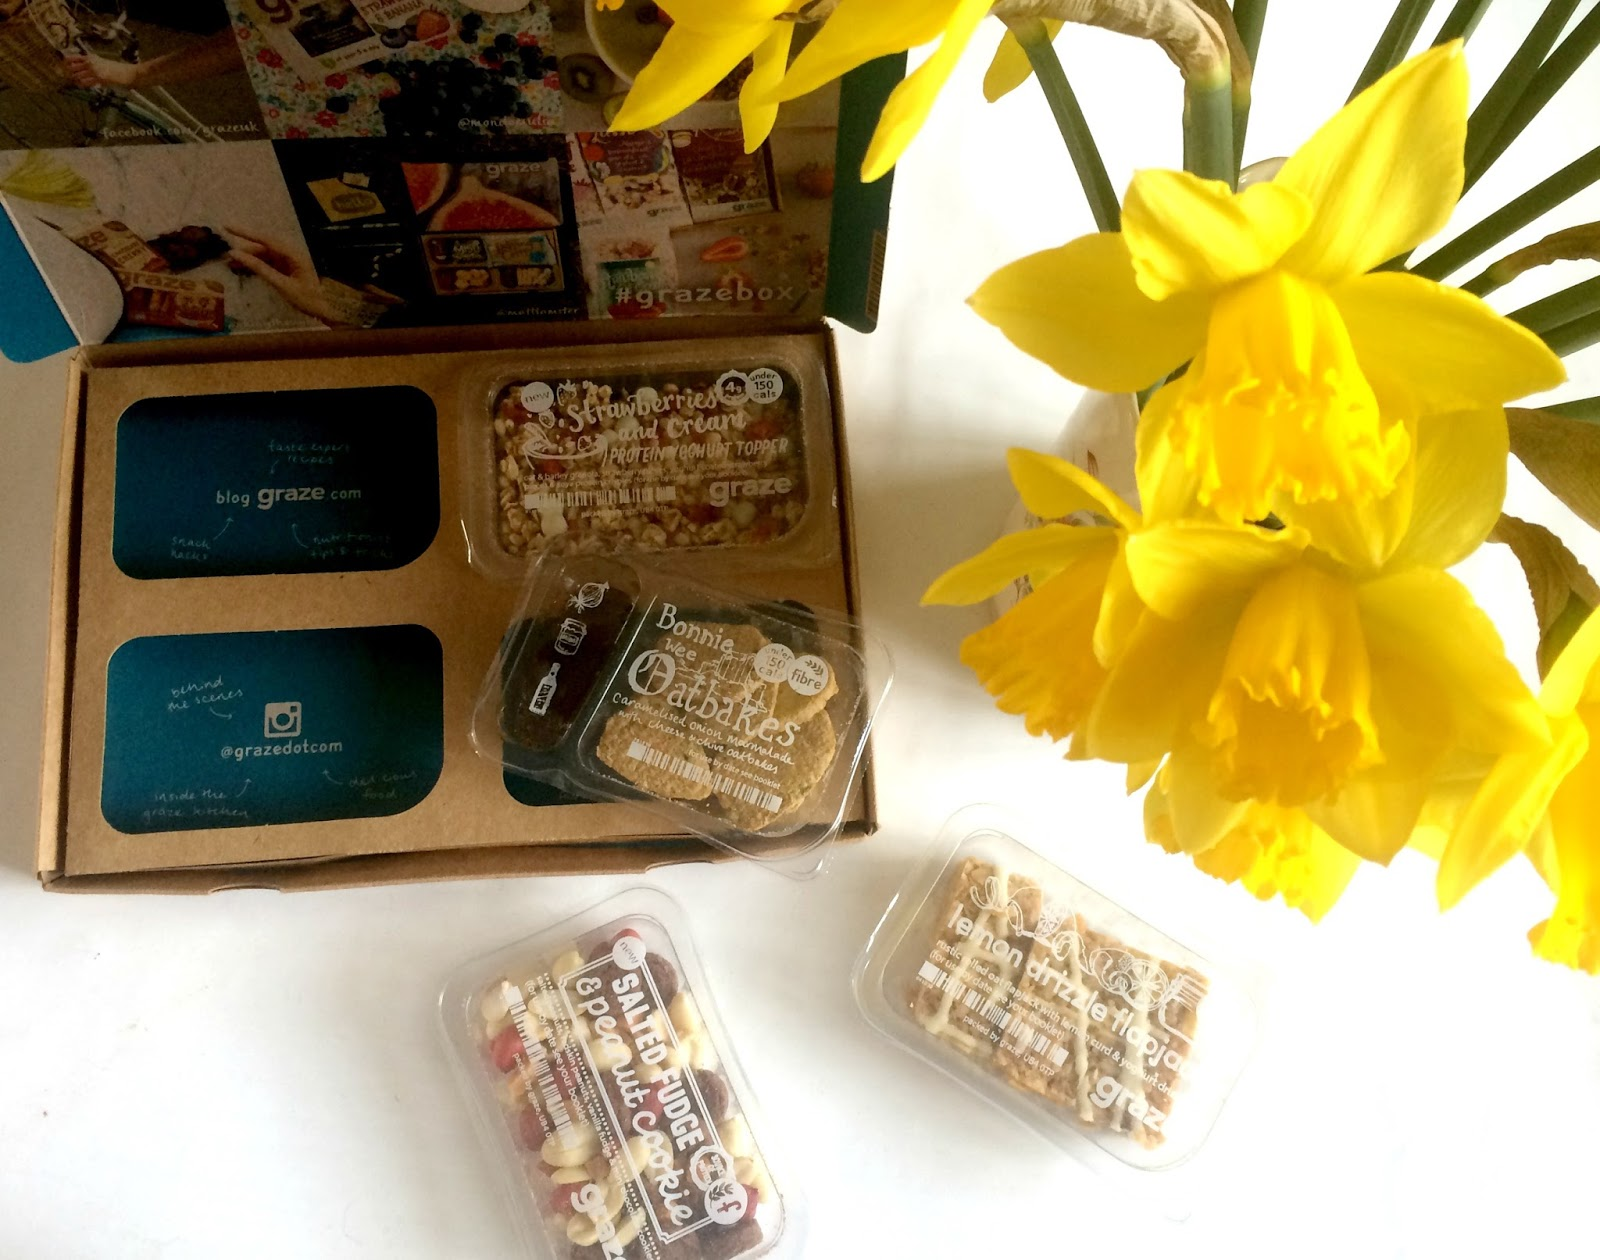 Graze.com review and discount code